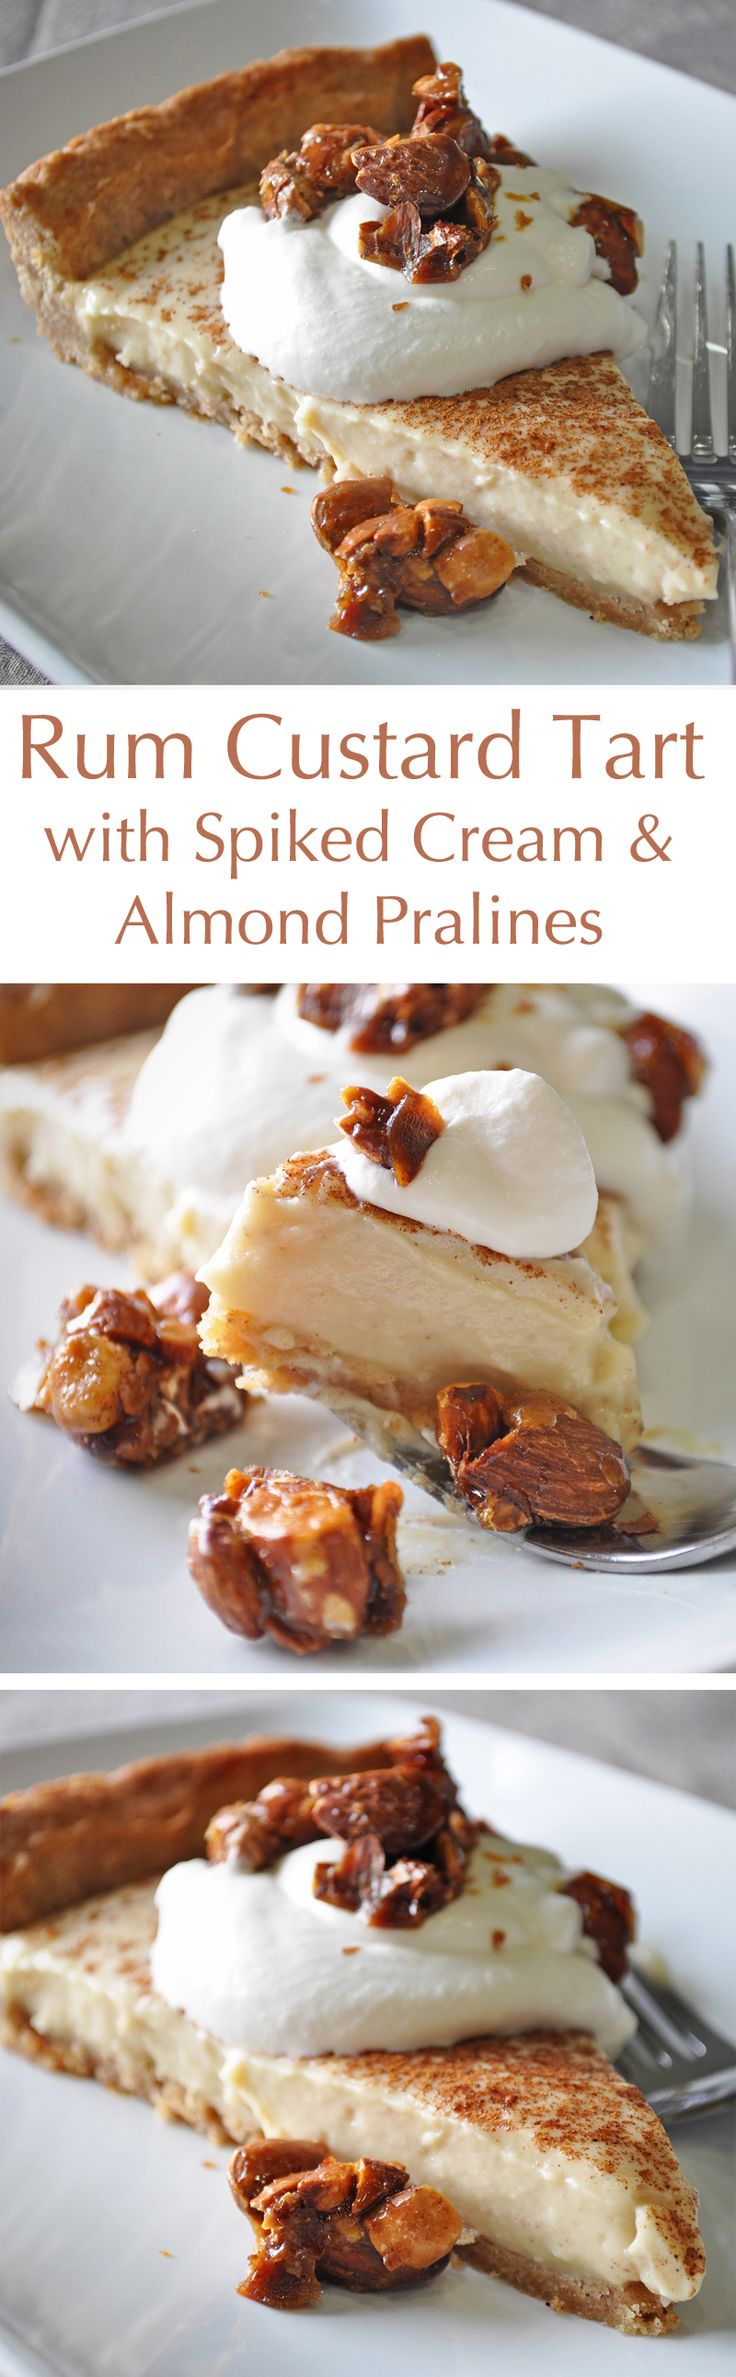 This Rum Custard Tart features creamy rum-spiked custard in a Brown Sugar Crust, topped with rum-spiked whipped cream and carmel Almond Pralines. It's a perfect Thanksgiving dessert recipe... although I for one am not about to wait until then to make it.